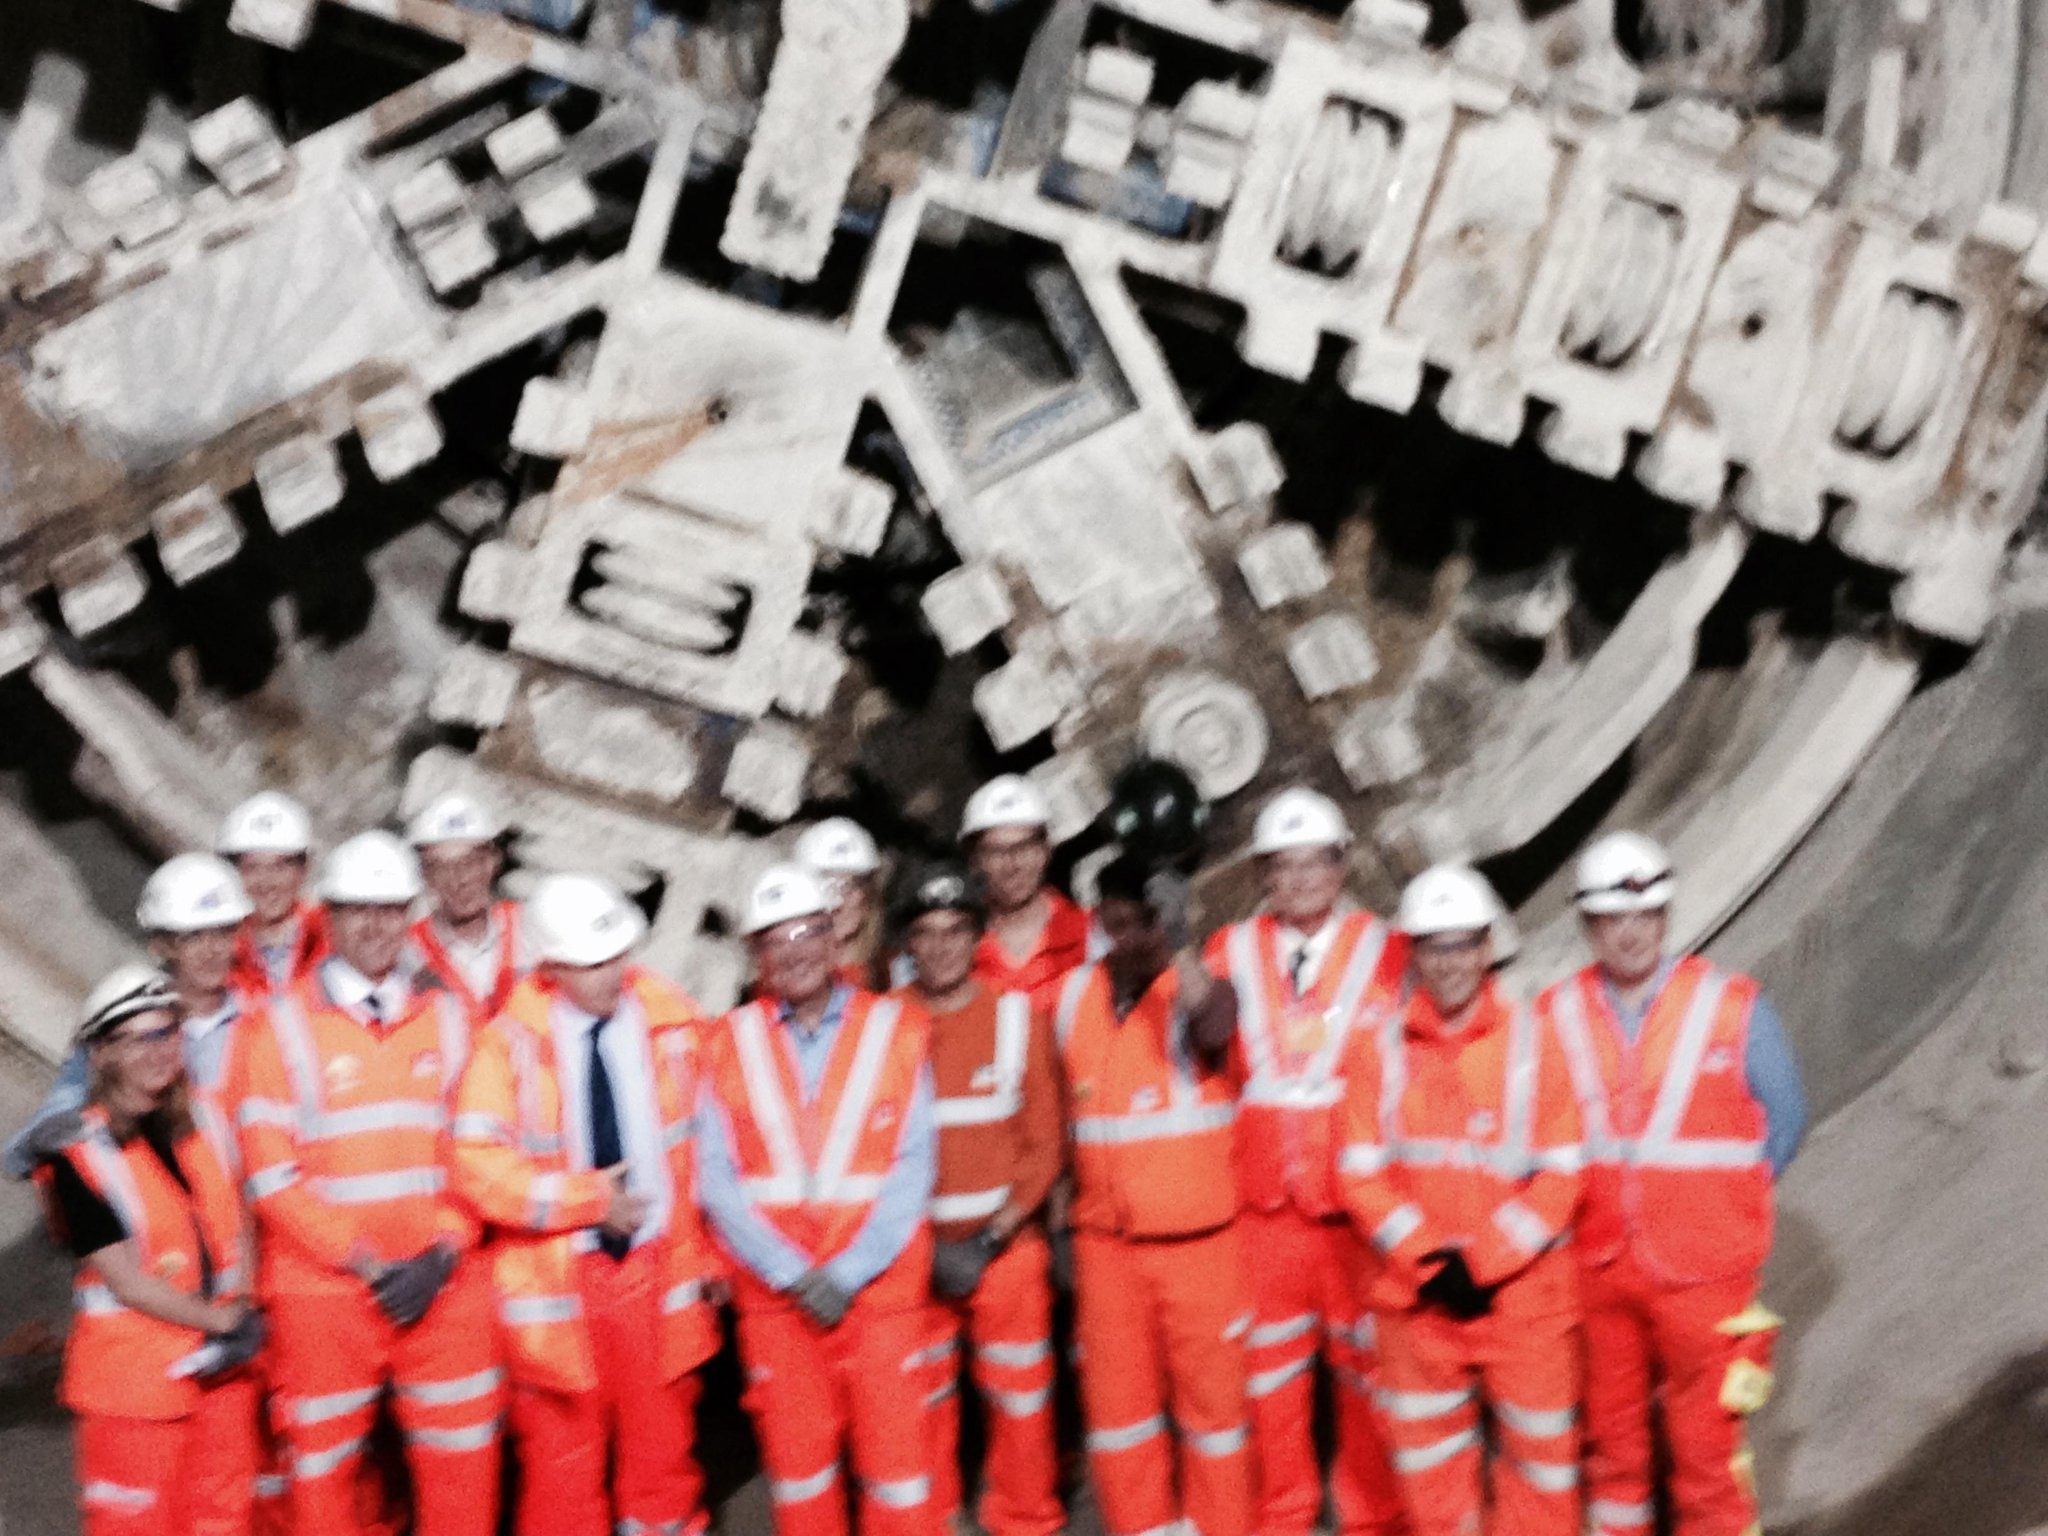 Great to meet those working on @Crossrail - Europe's largest infrastructure project which remains on time & on budget http://t.co/O8uD4AXz9W